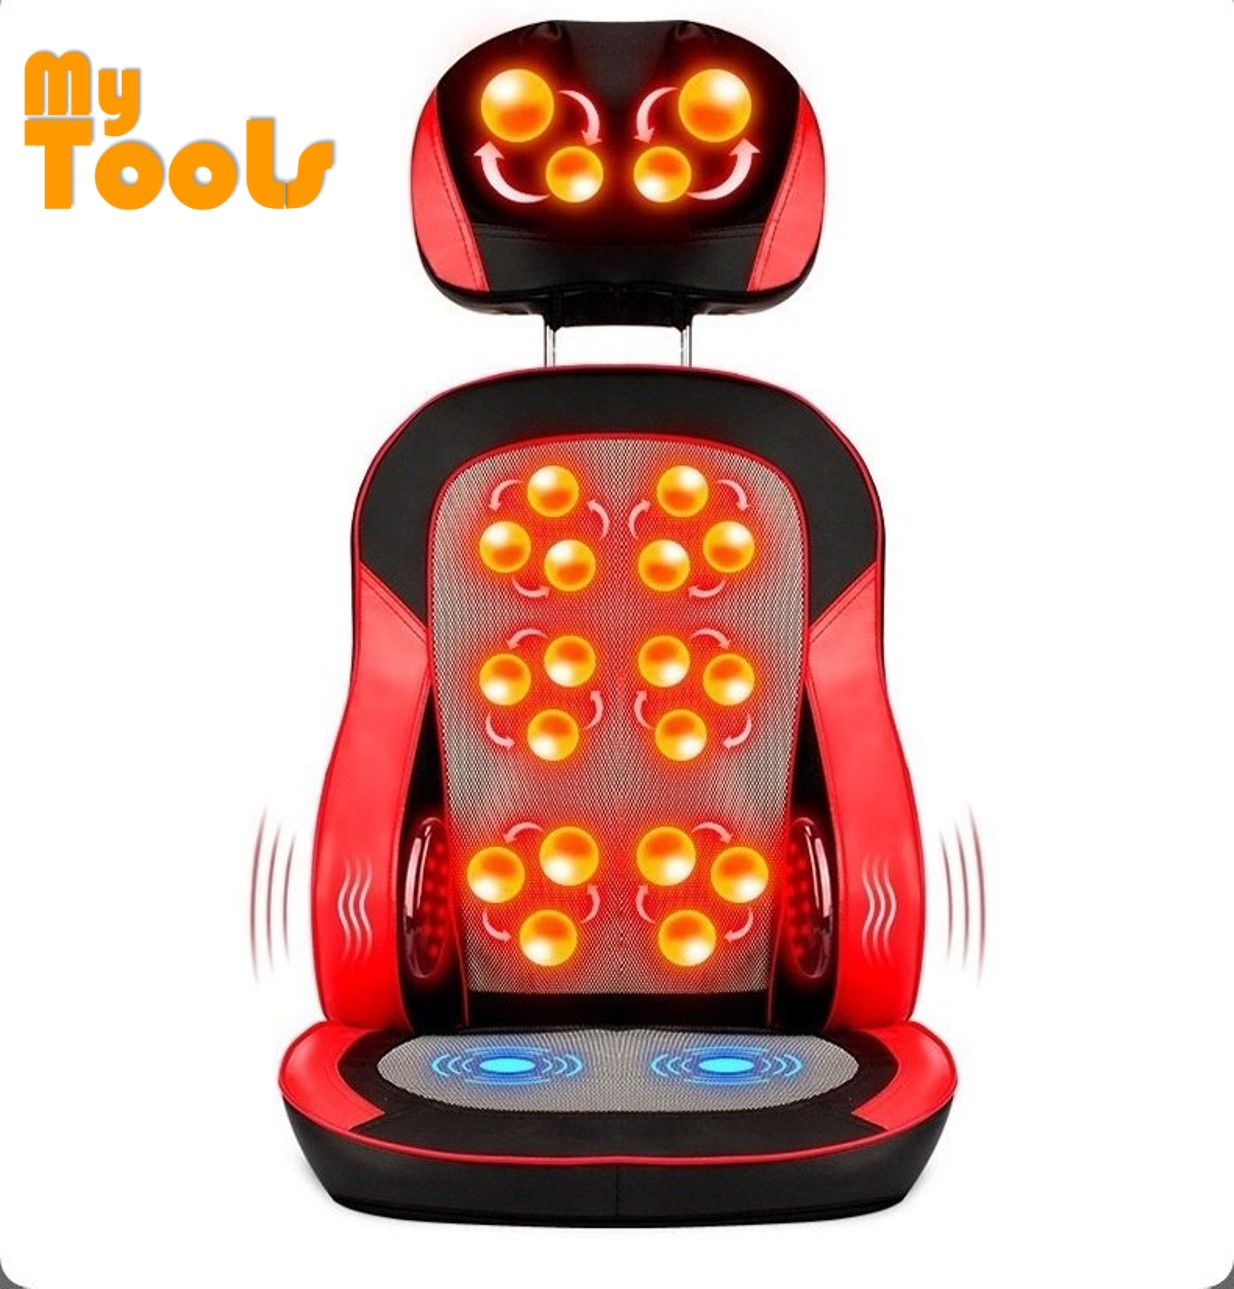 Mytools Healthy Electric Body Massage Heating Massage Cushion Therapy Machine Pad